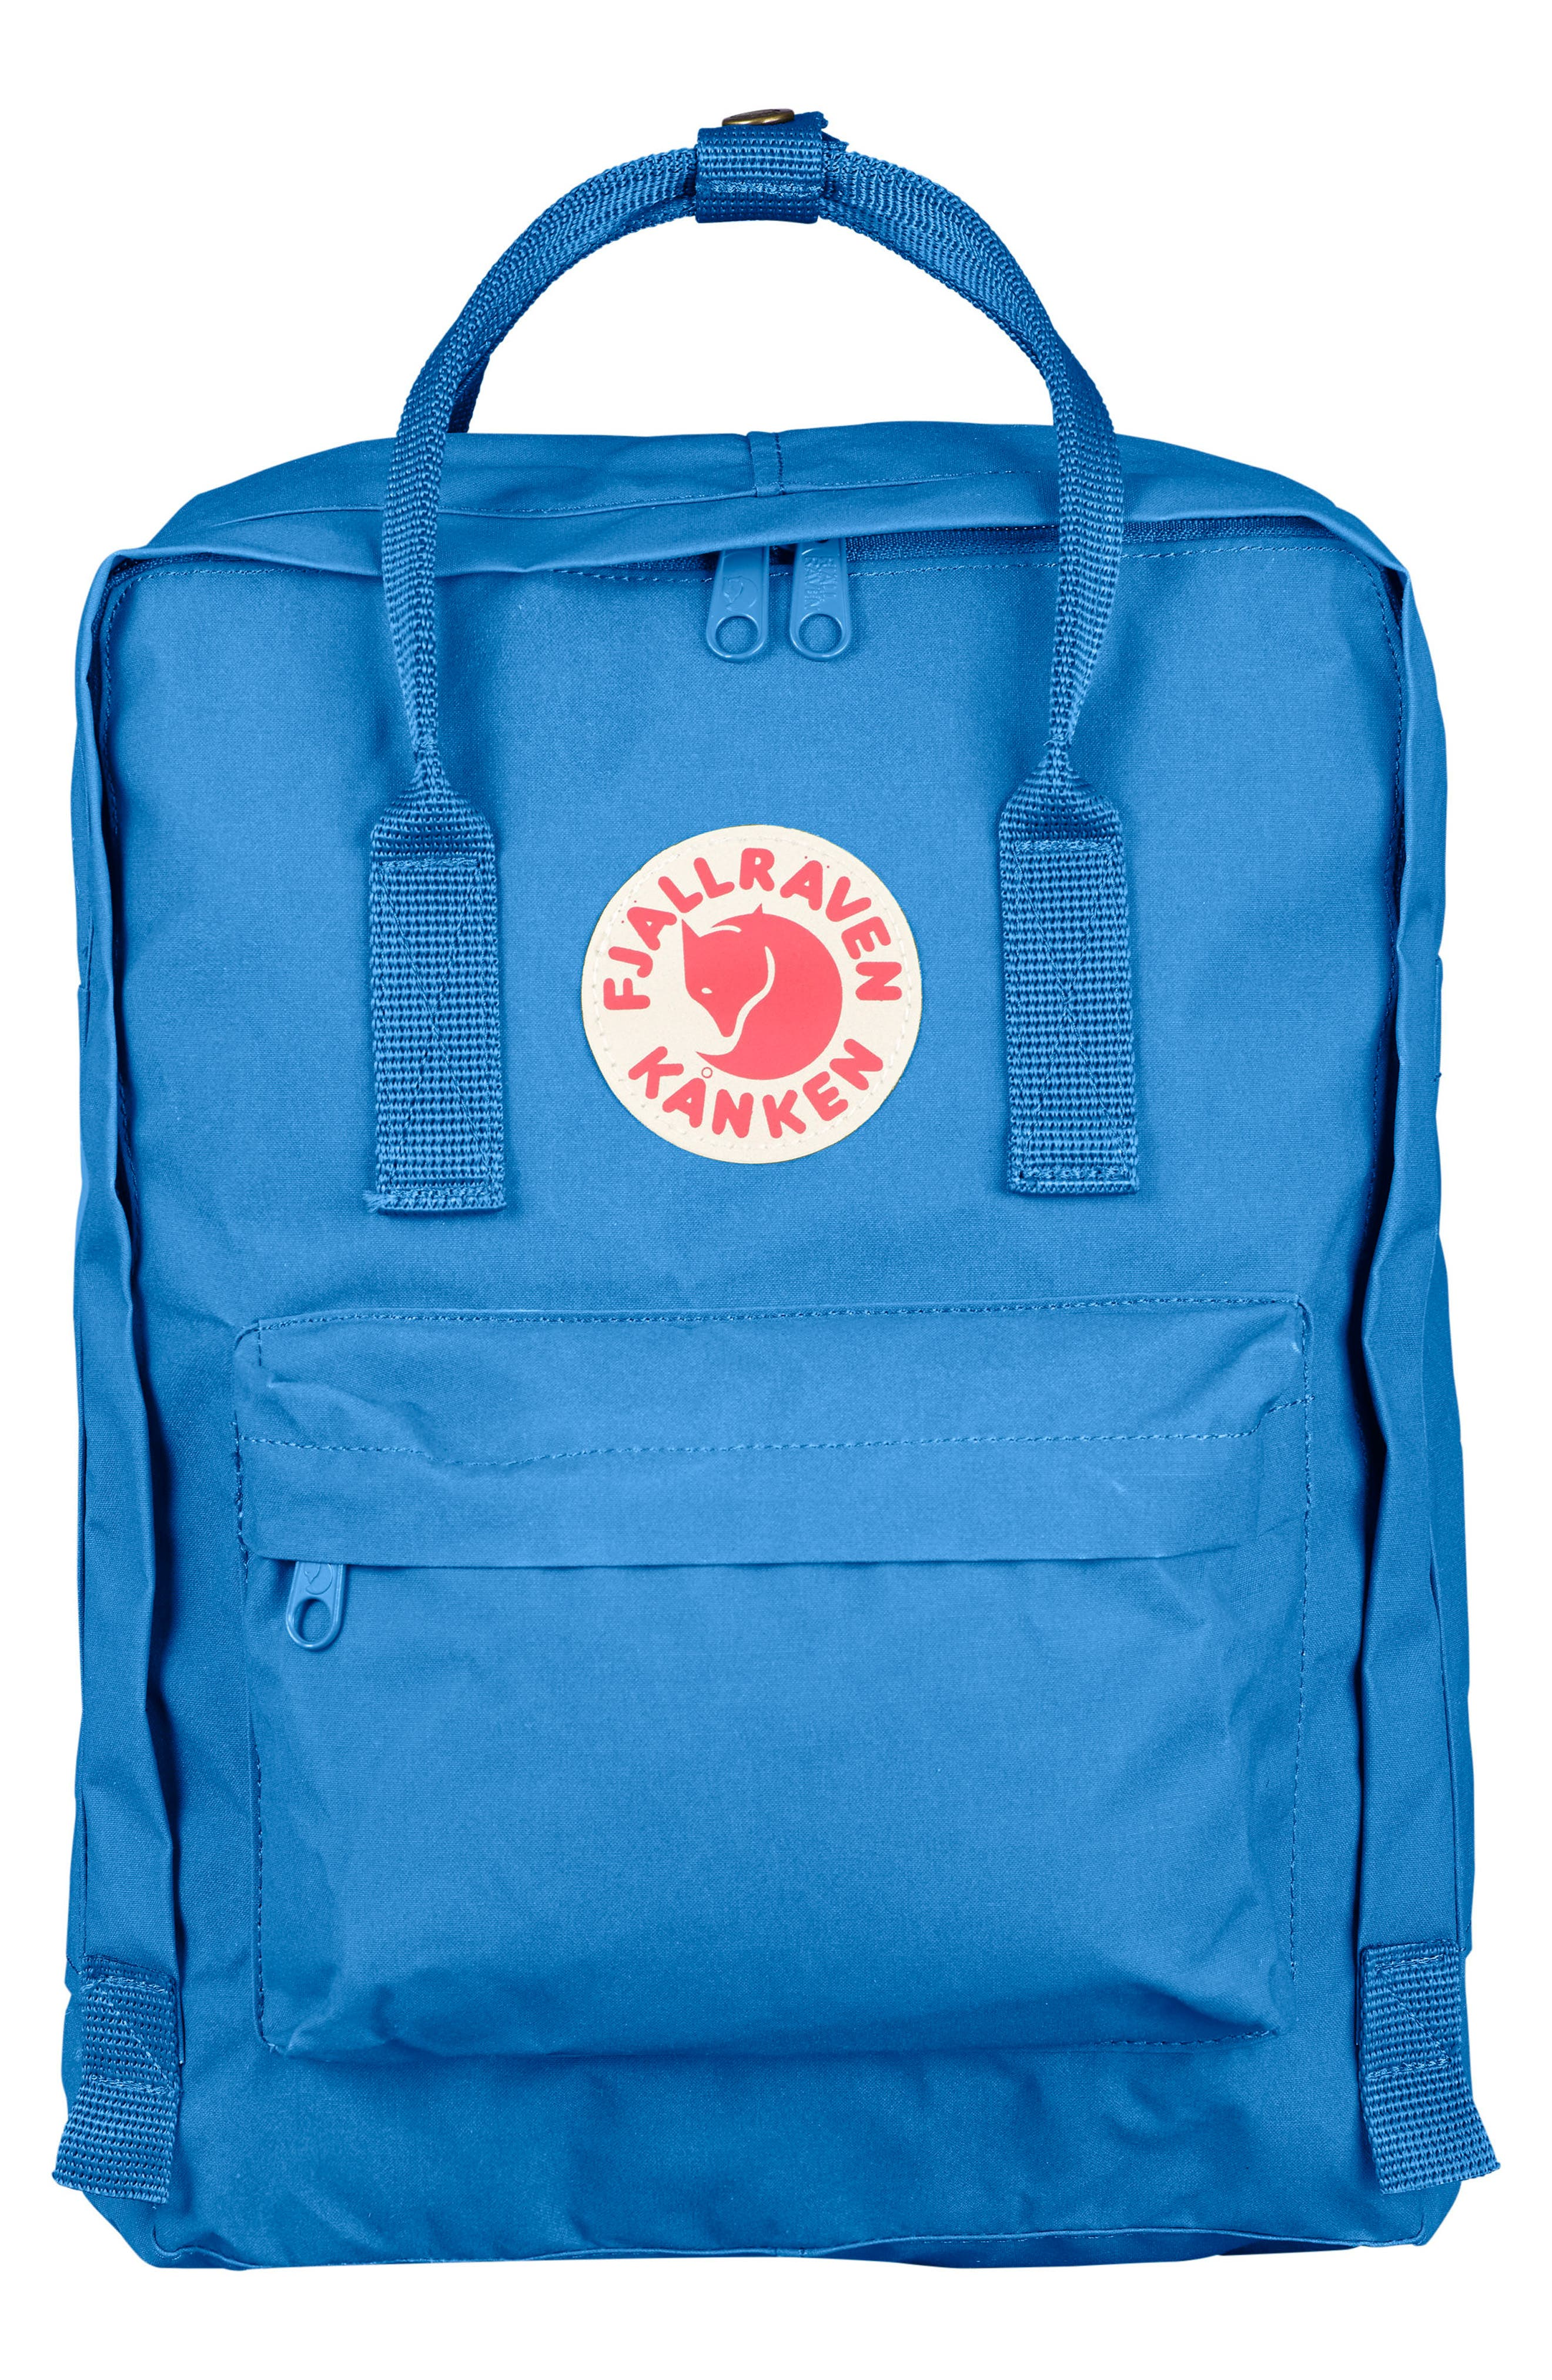 Main Image - Fjällräven 'Kånken' Water Resistant Backpack